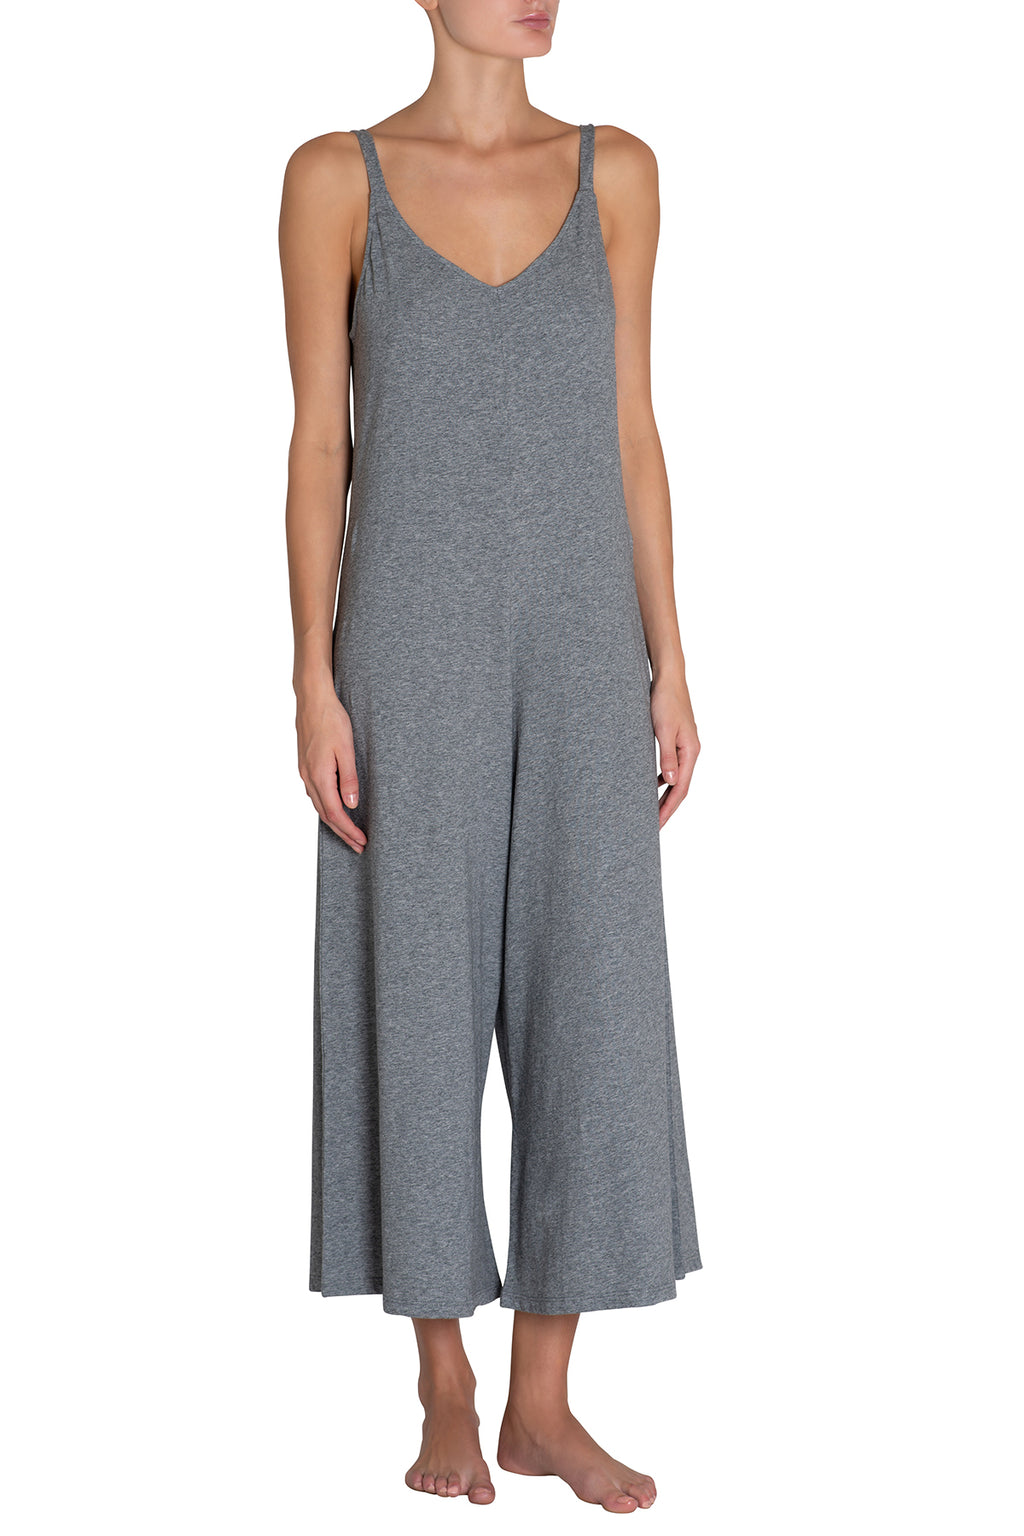 Eberjey Charlie Causal Jumpsuit - Heather Grey